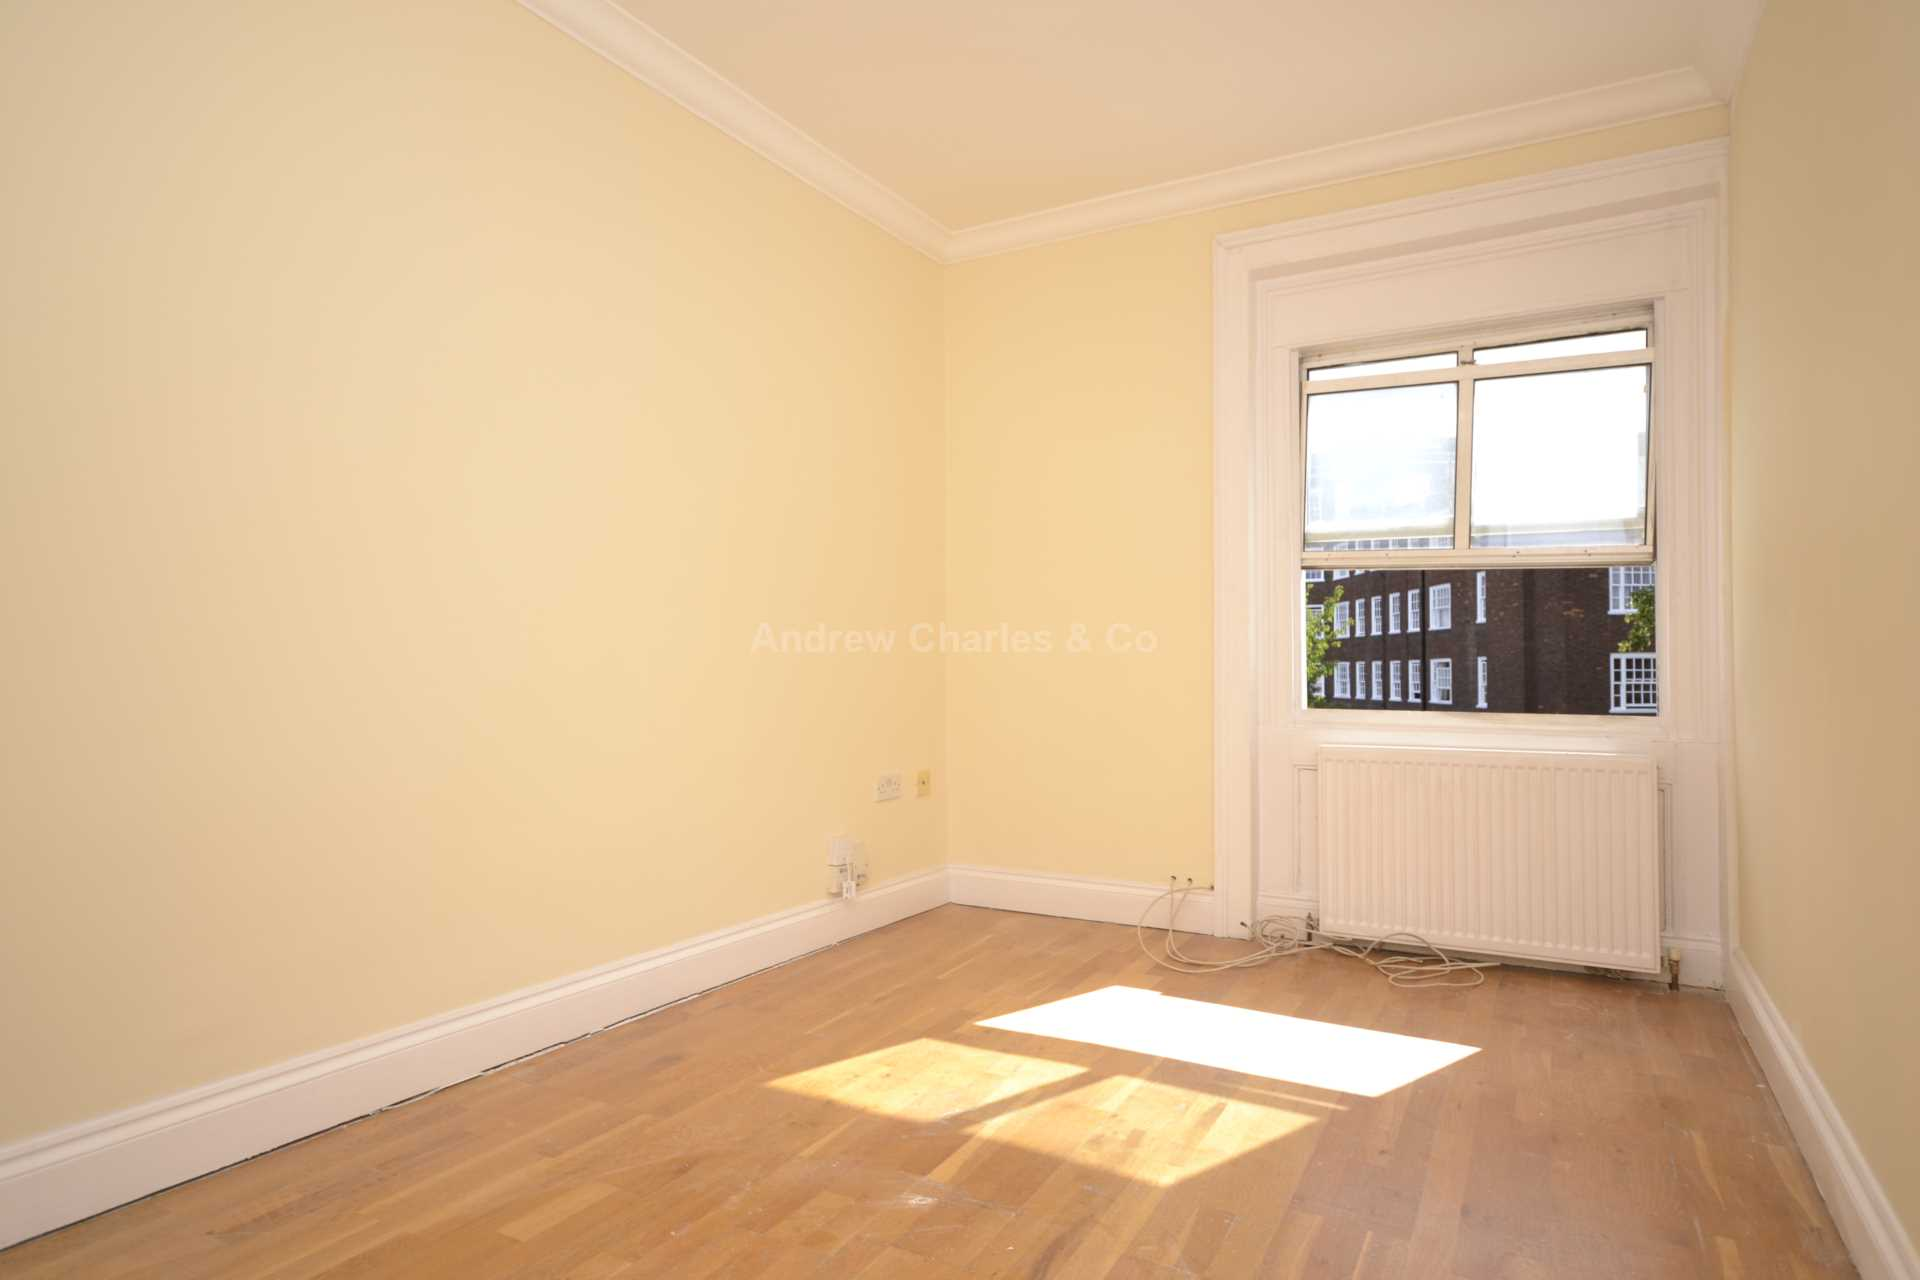 3 Bedroom Apartment To Rent Haverstock Hill Chalk Farm